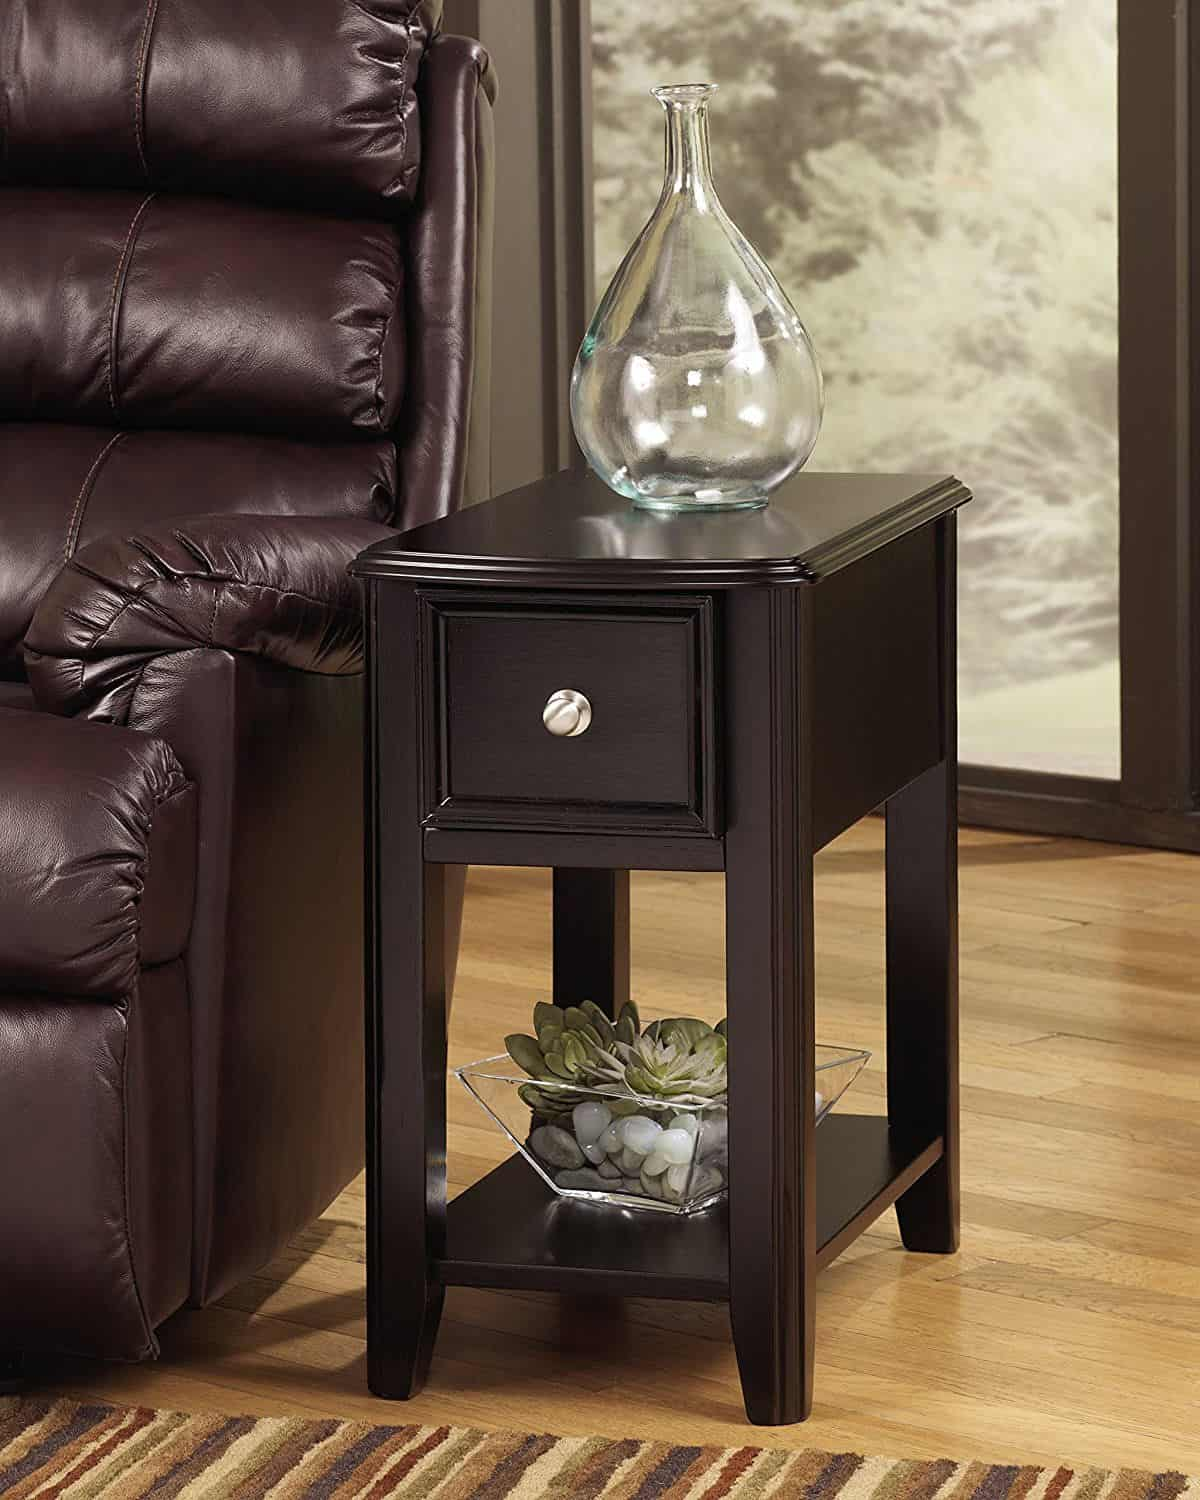 6 Terrific Small Side Table Options for Your Living Room (6)